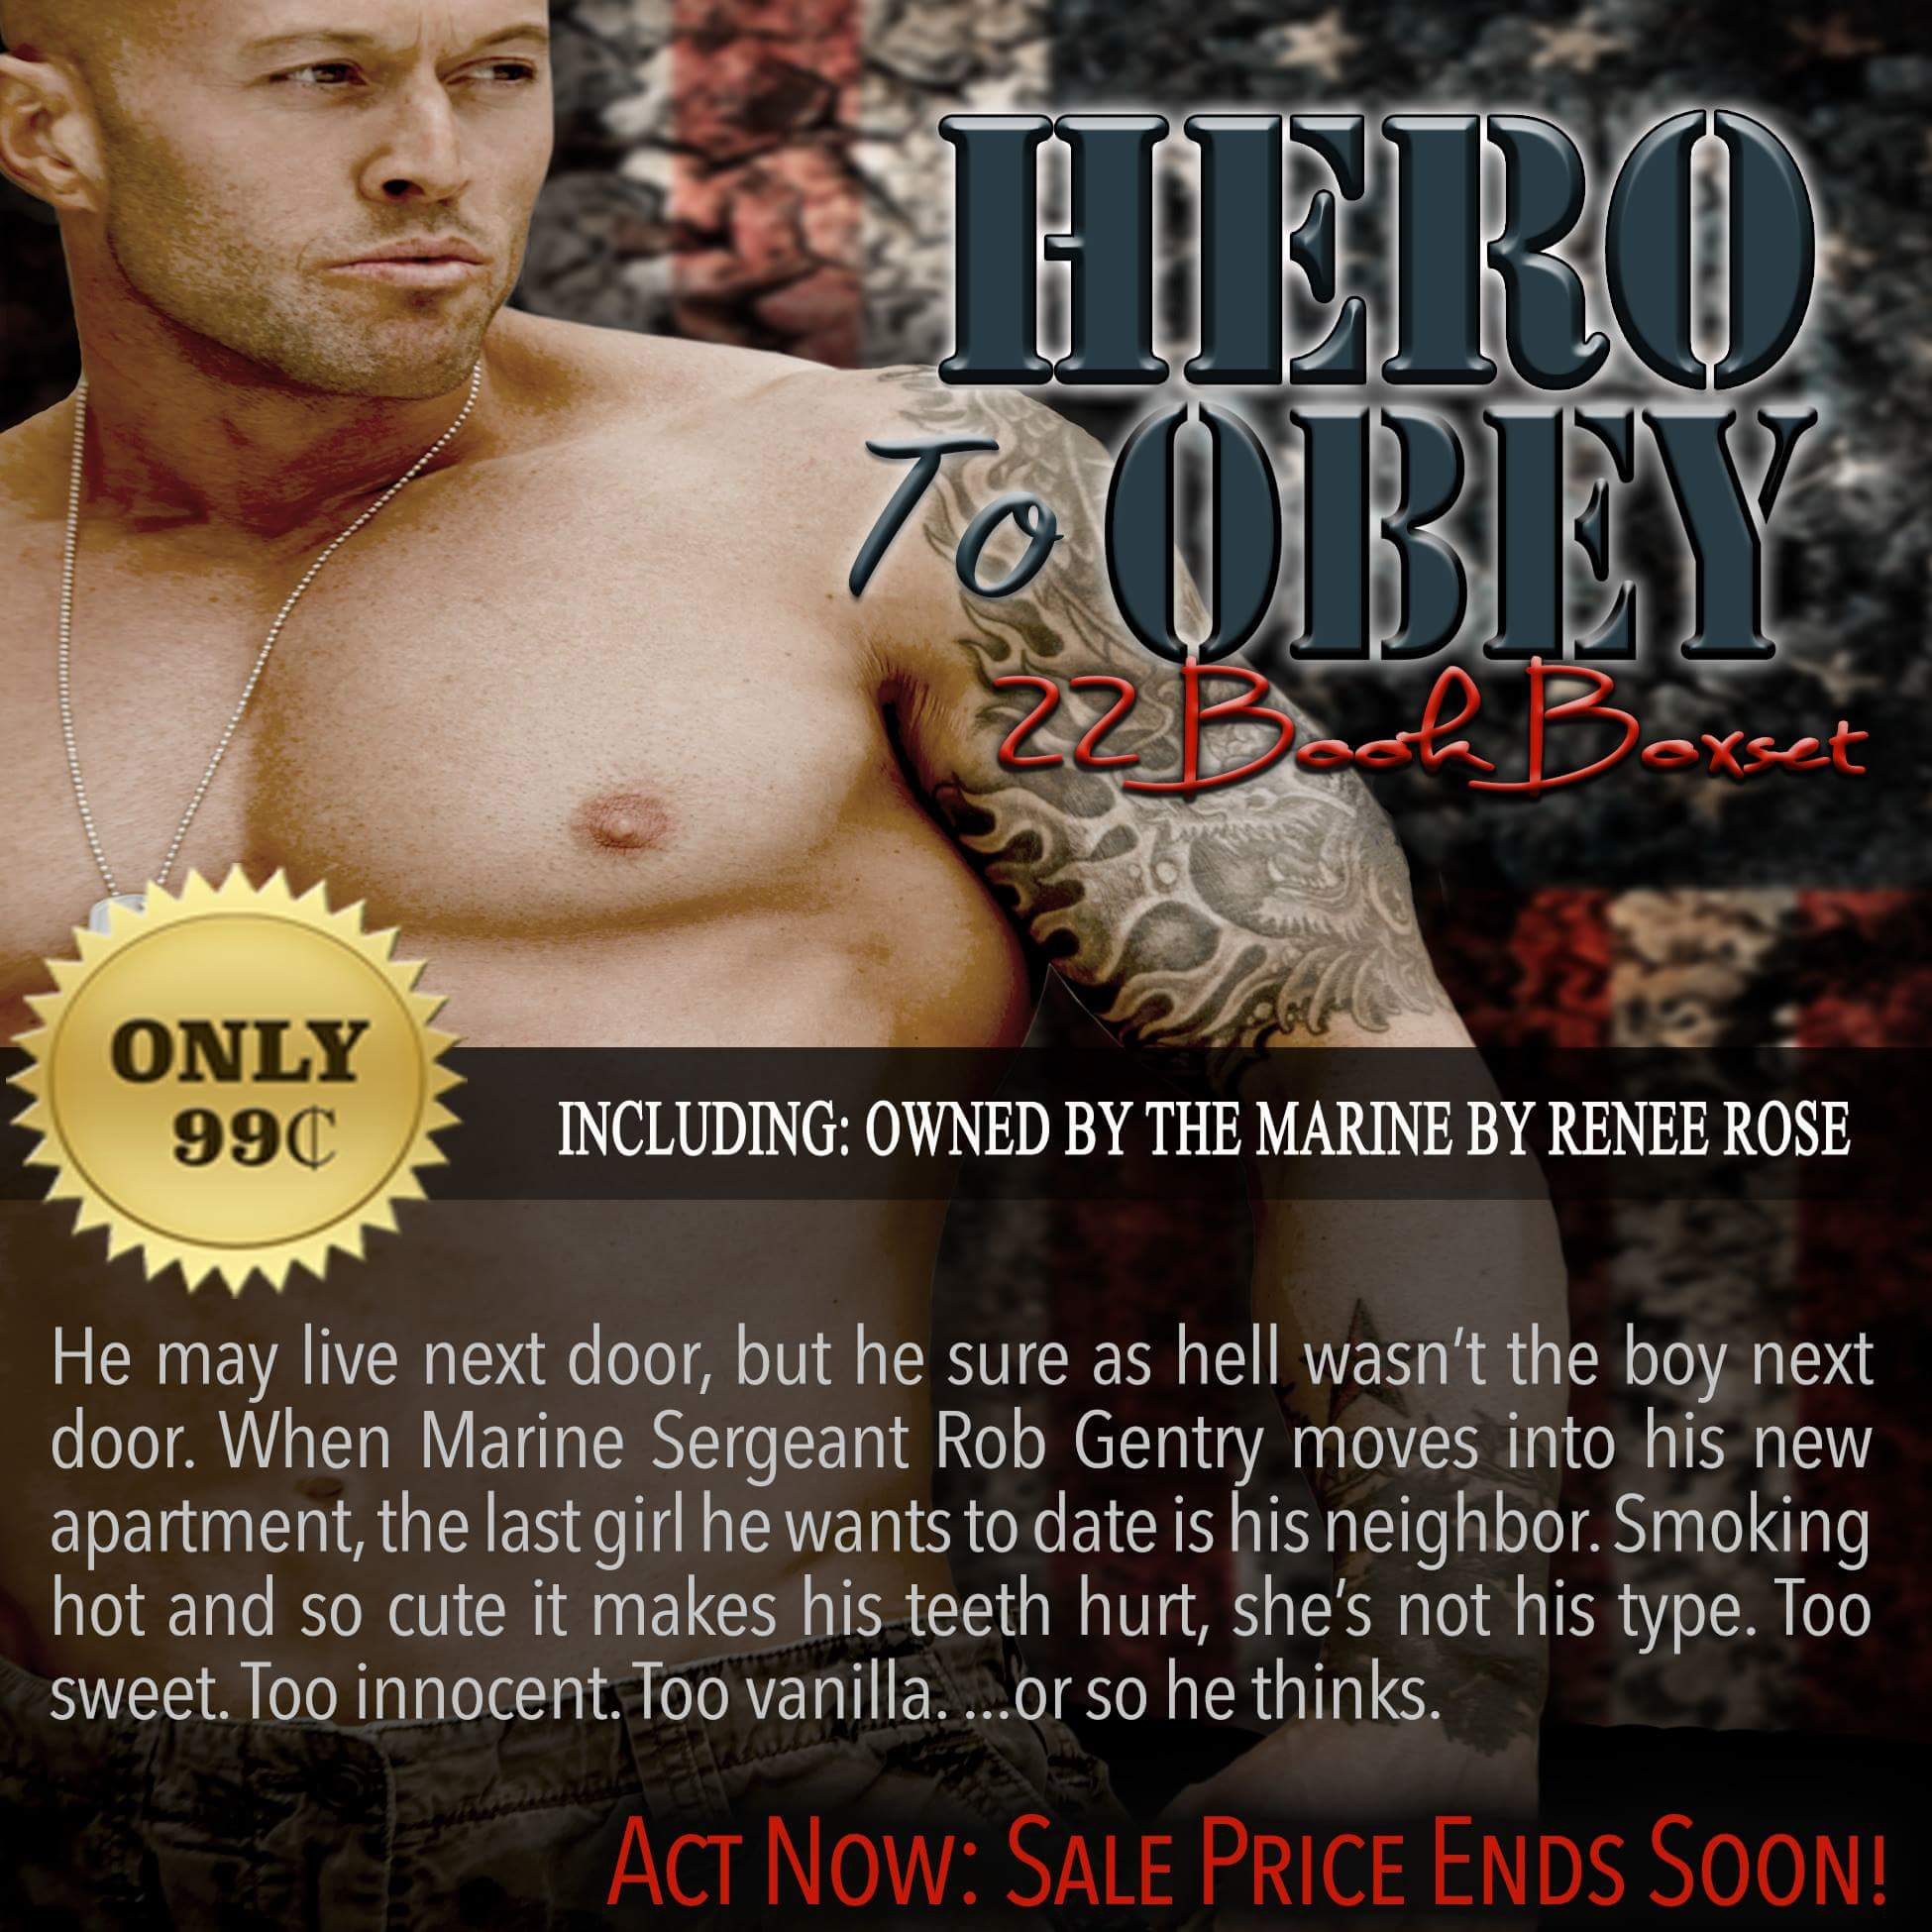 Hero To Obey Book Cover Model Actor John Joseph Quinlan by Renee Rose. #JohnQuinlan #Hero2obey